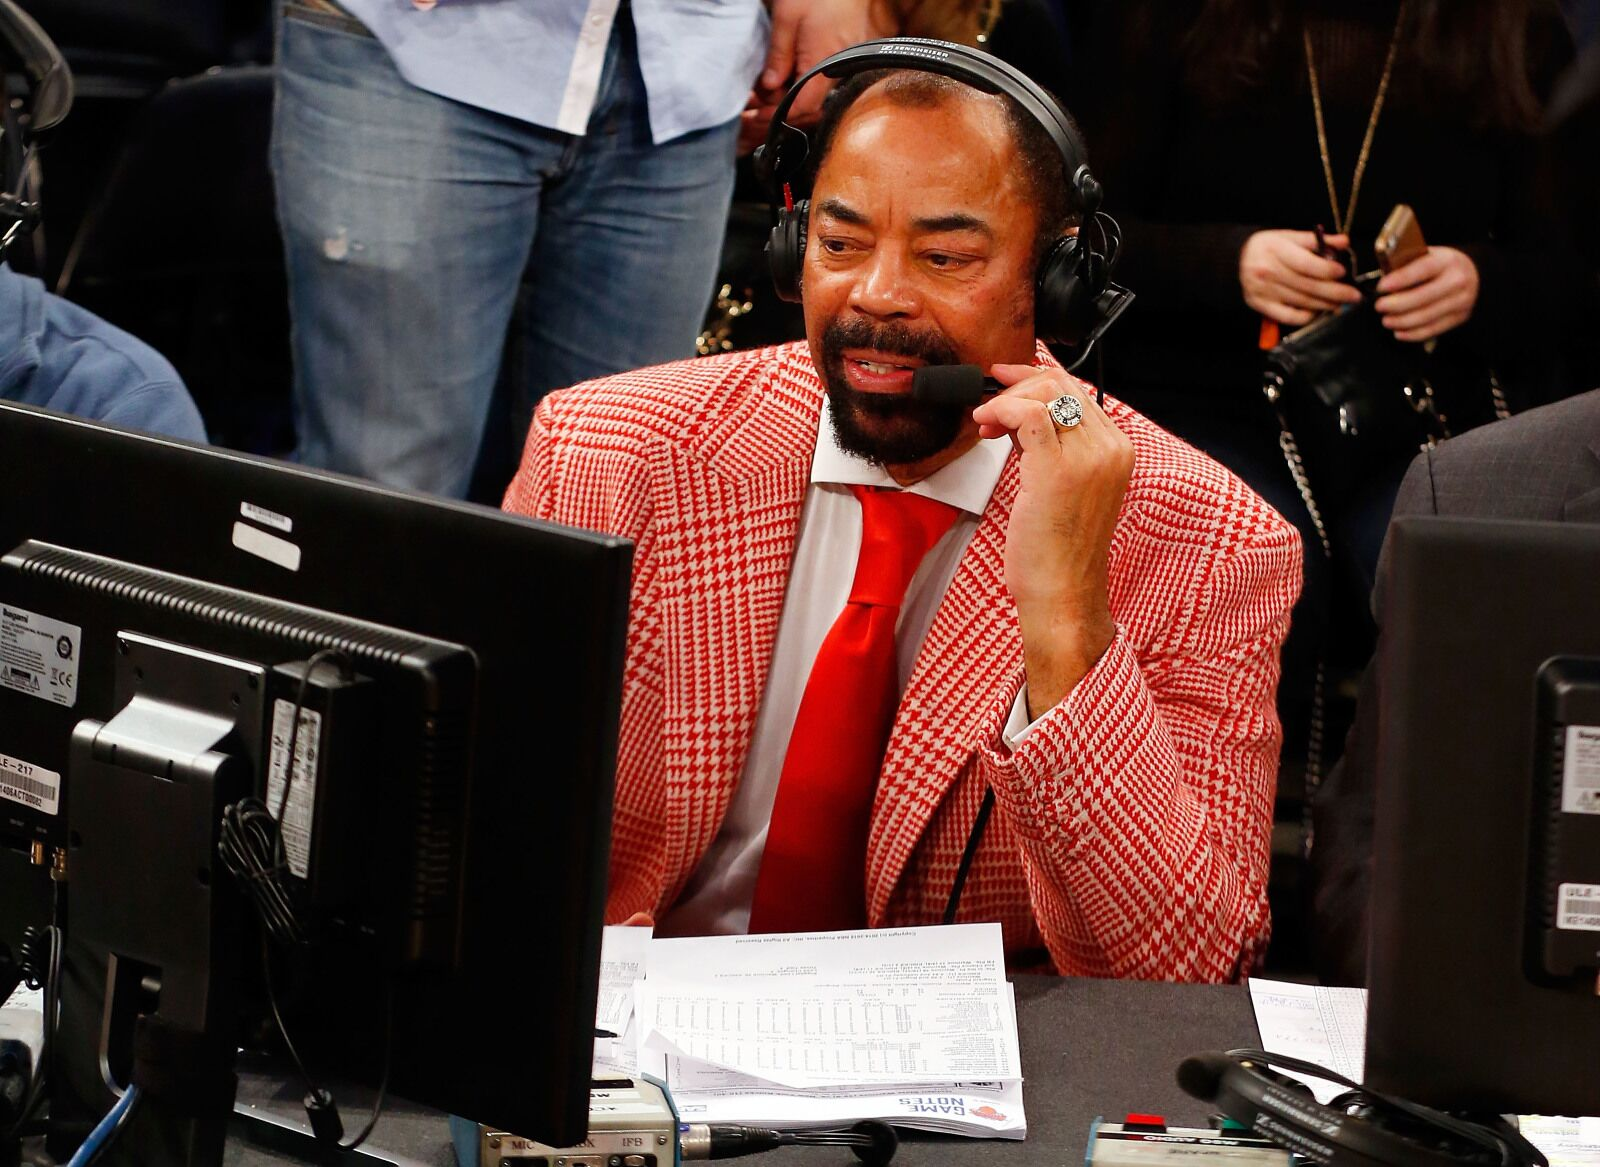 Los Angeles Lakers: Clyde Frazier has stinging words for LeBron James